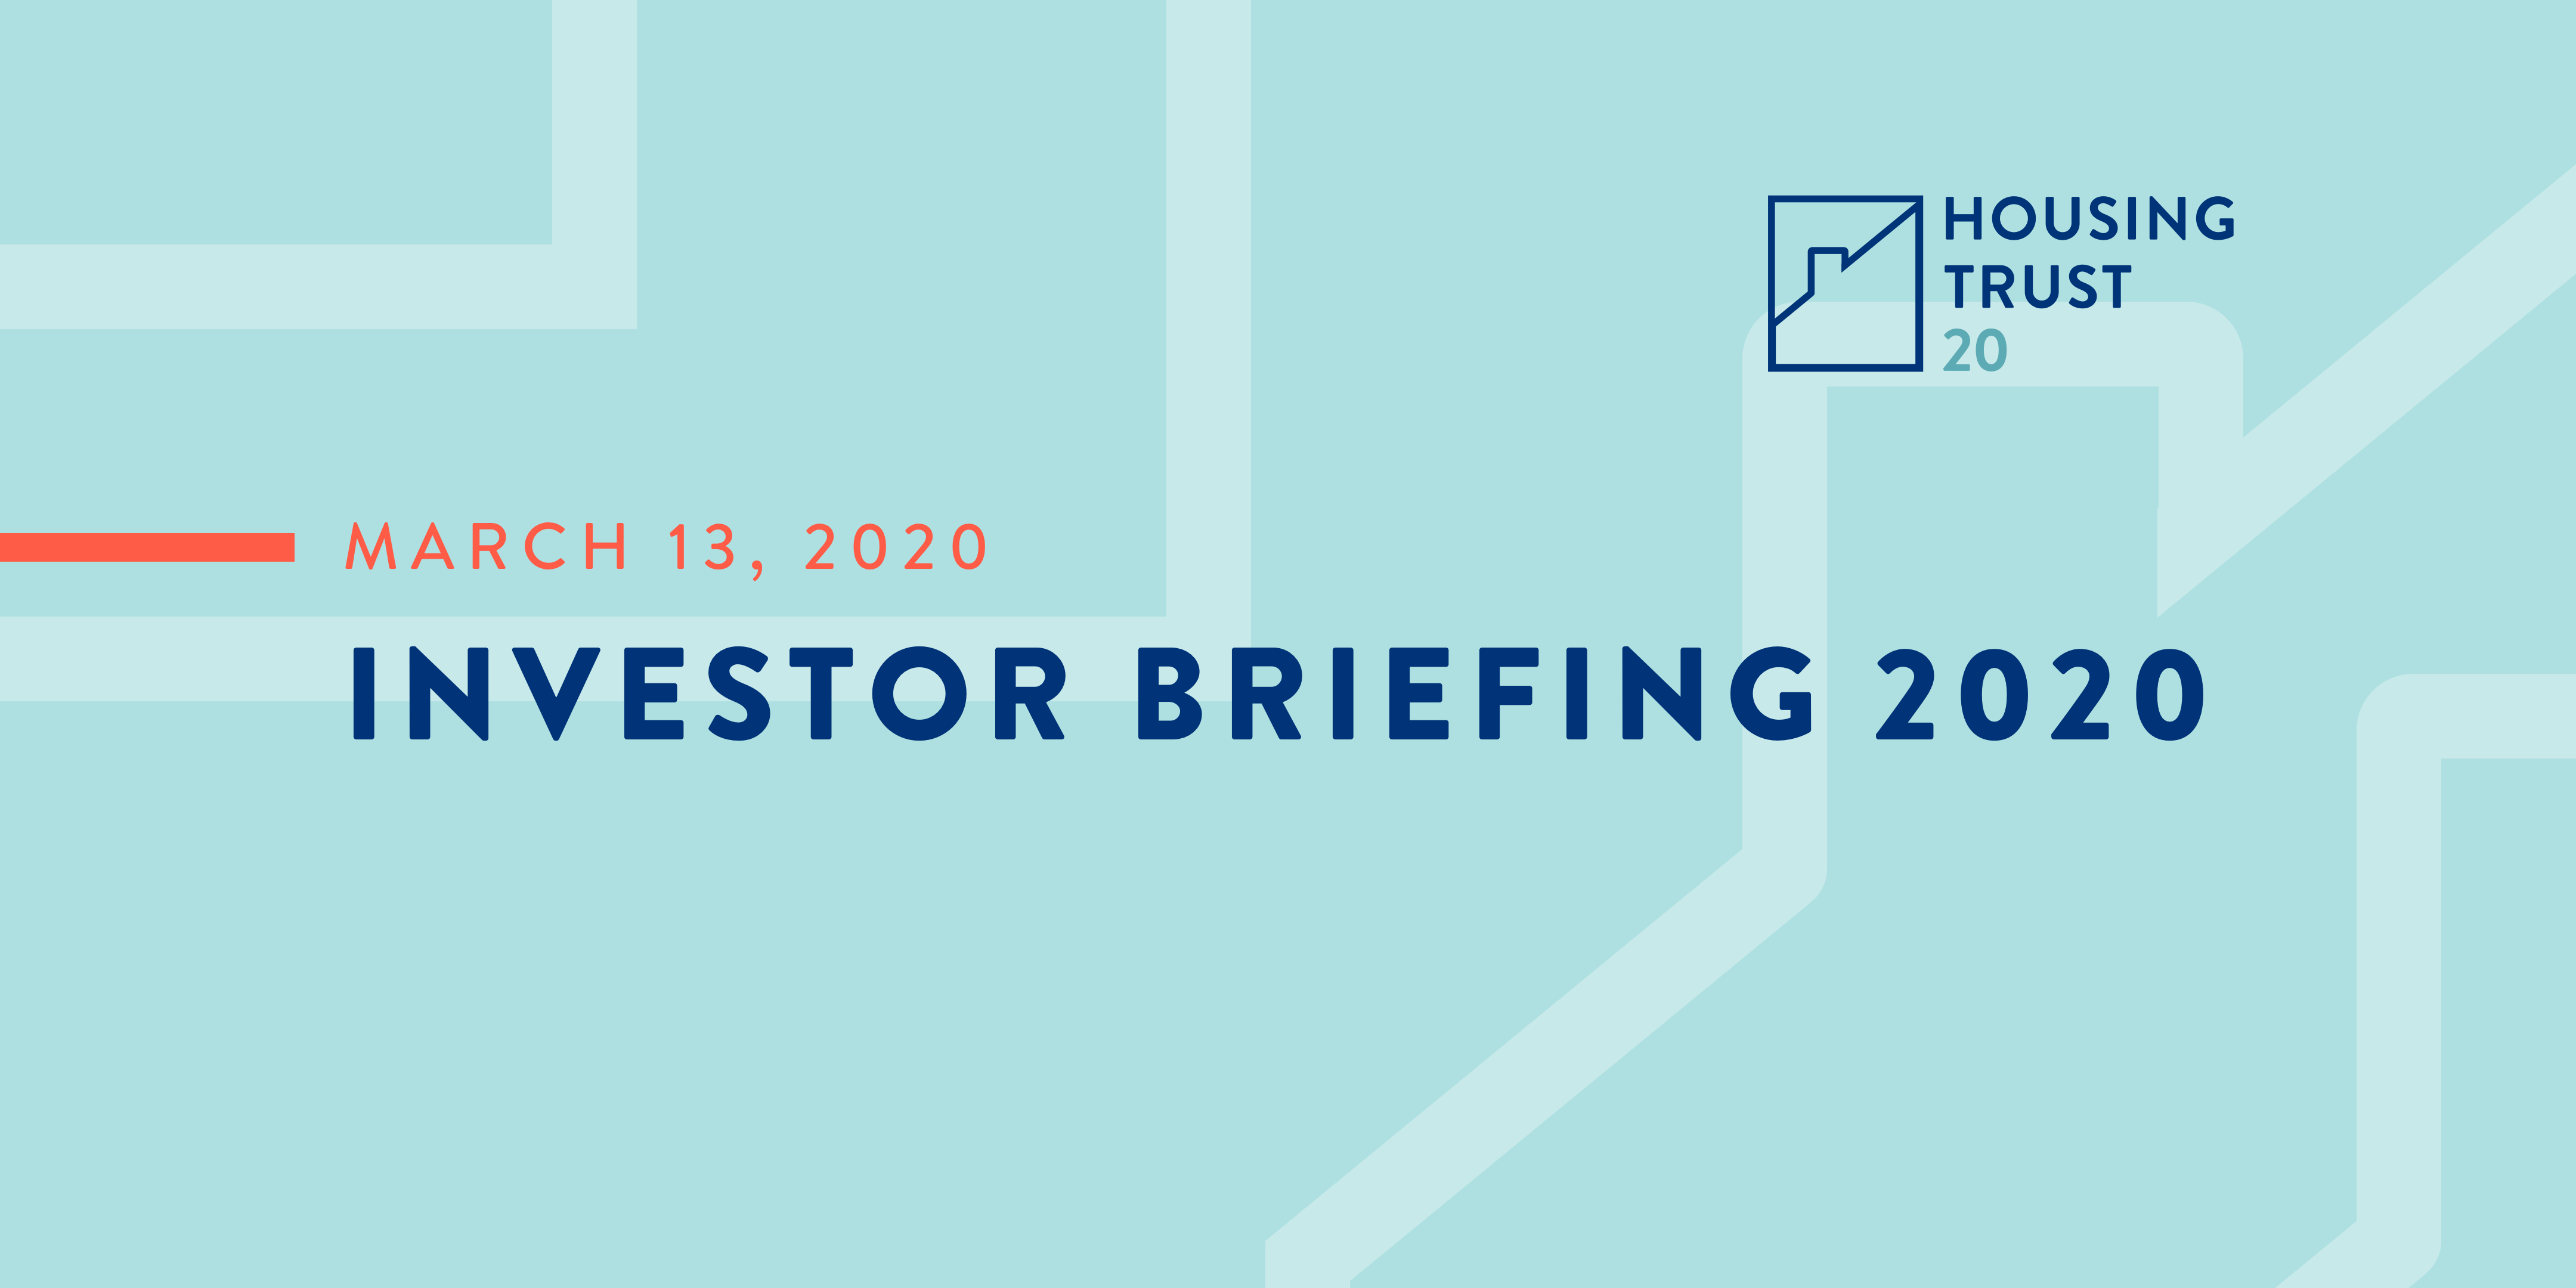 Investor Briefing is on March 13